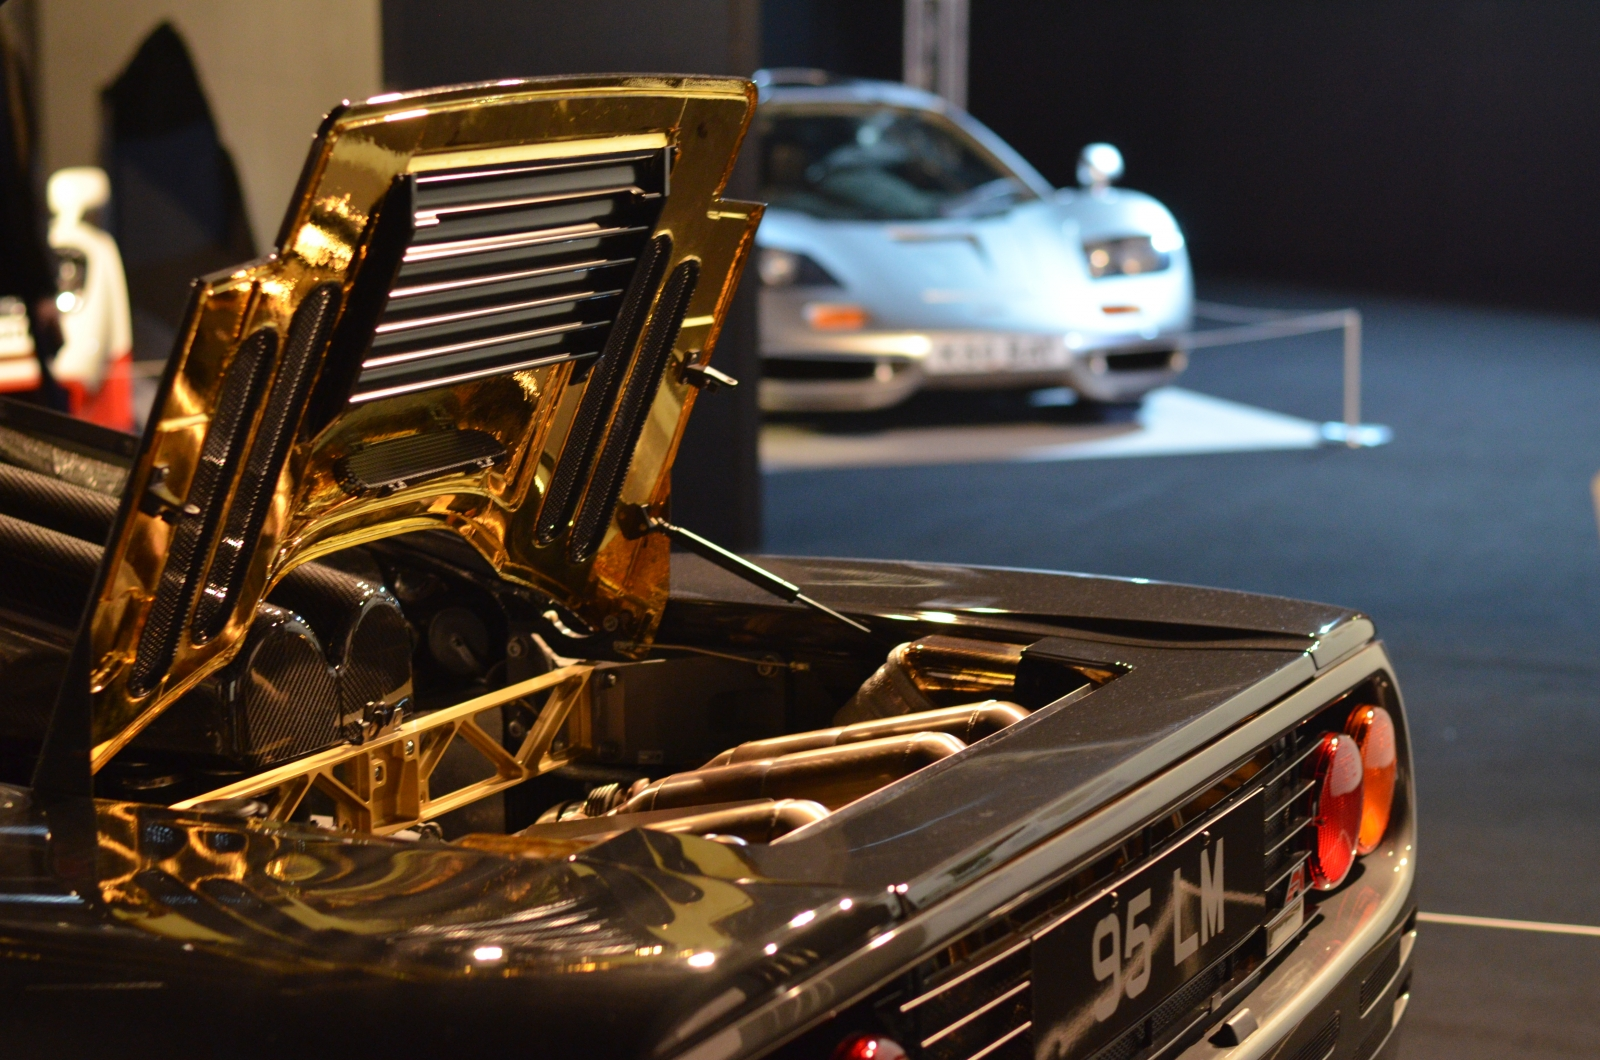 McLaren F1 gold engine bay